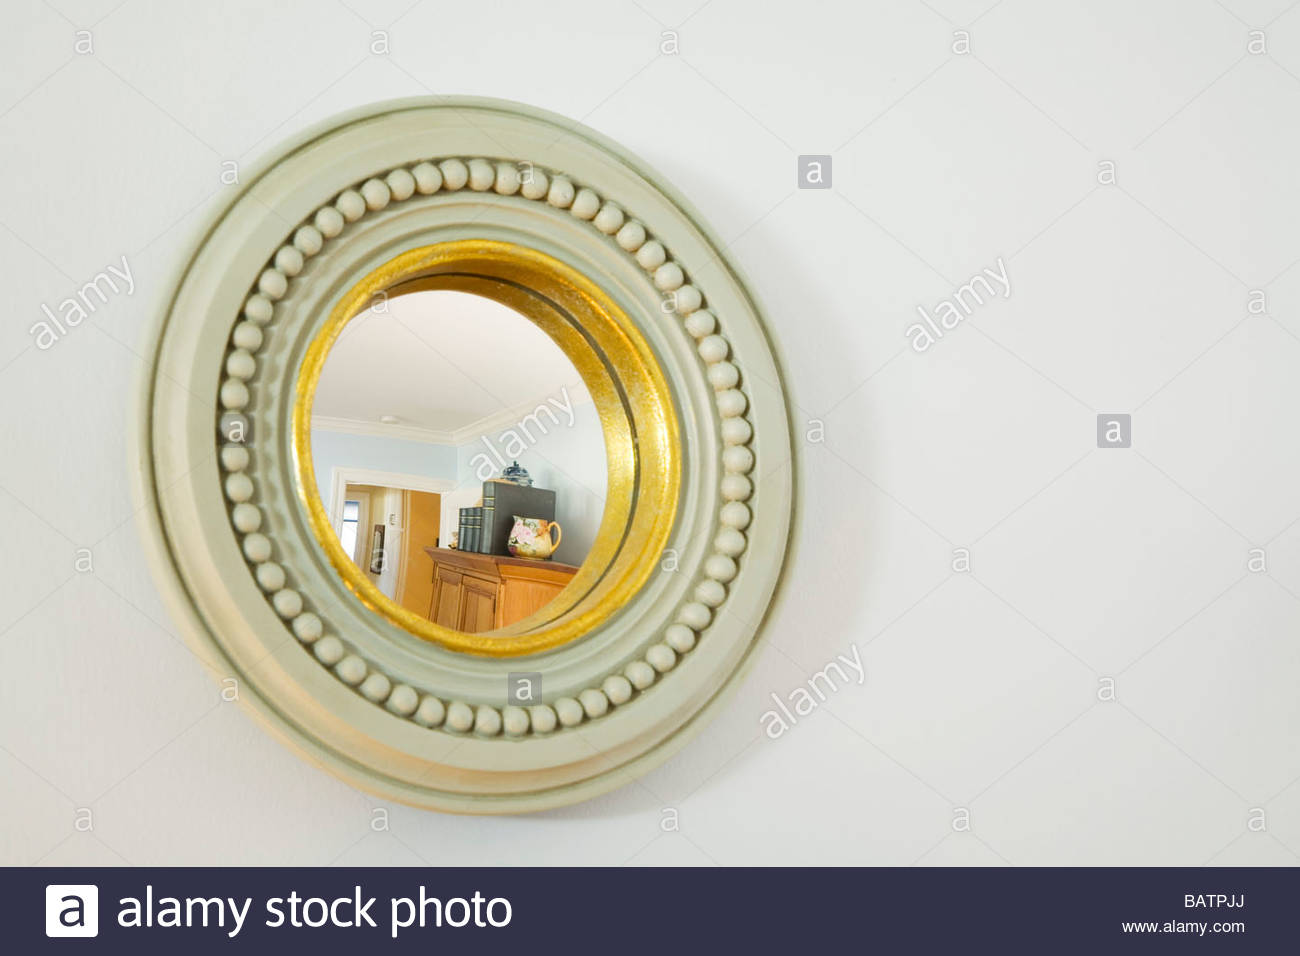 Small Round Decorative Mirror Stock Photo 23901546 Alamy